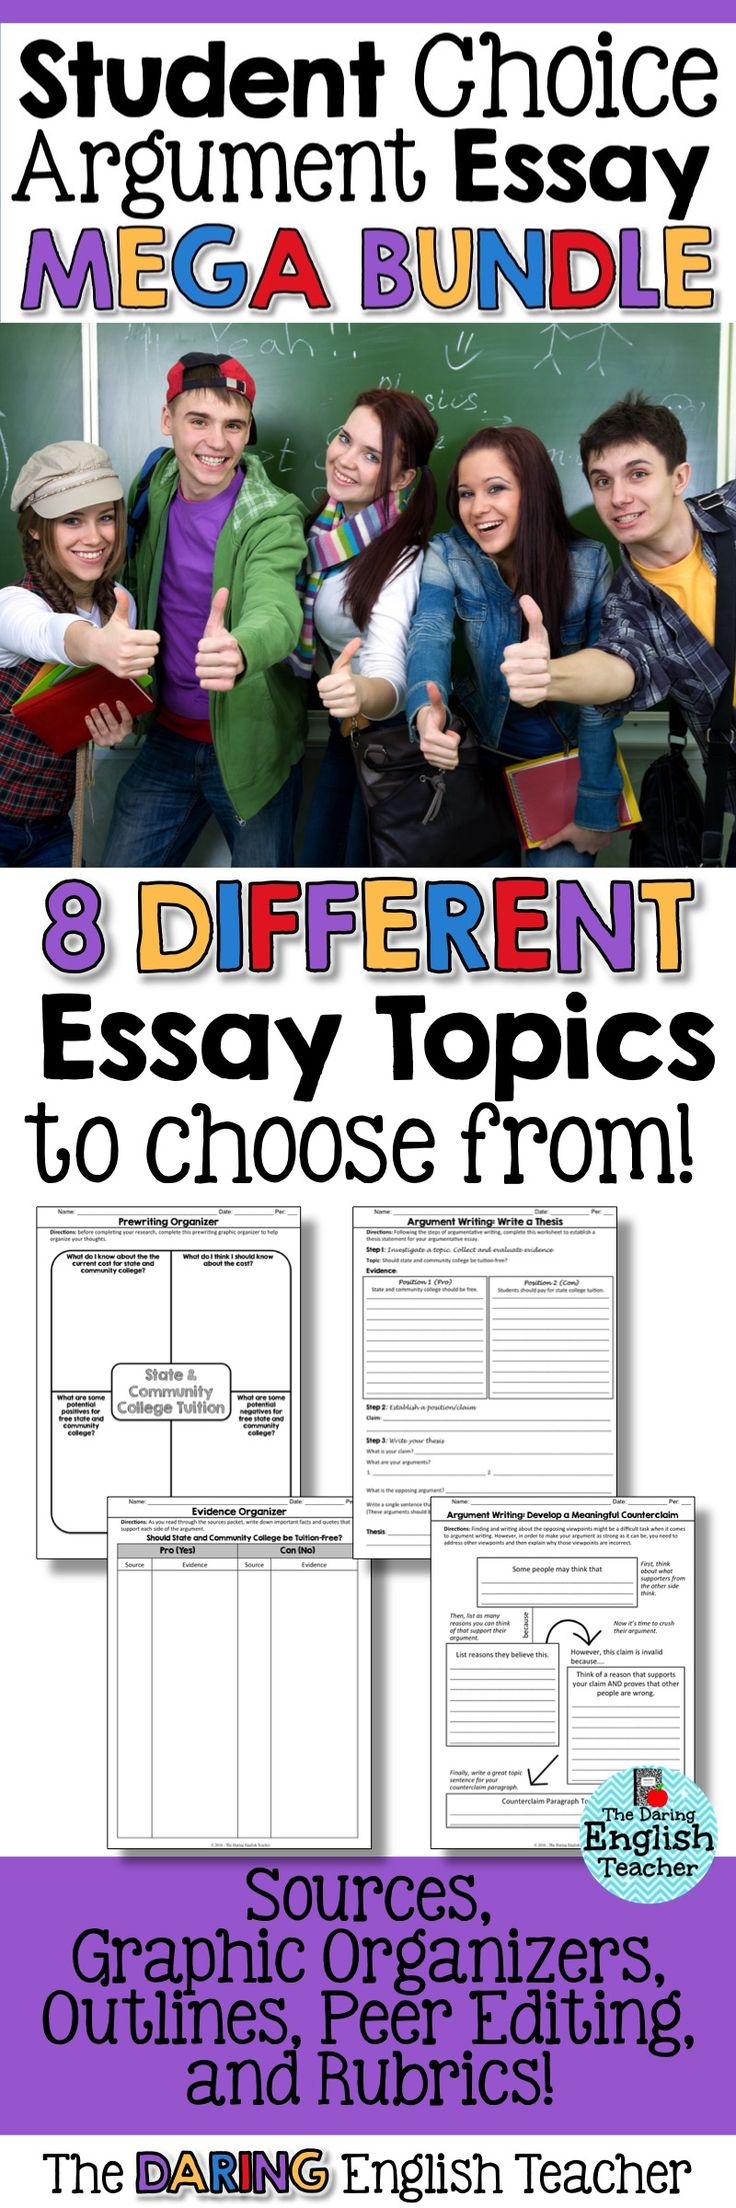 argument essay help Understanding how to structure and write an argumentative essay is a useful skill strong argumentative essays present relevant evidence that supports an argument and convinces the audience of a particular stance this type of essay provides the r.